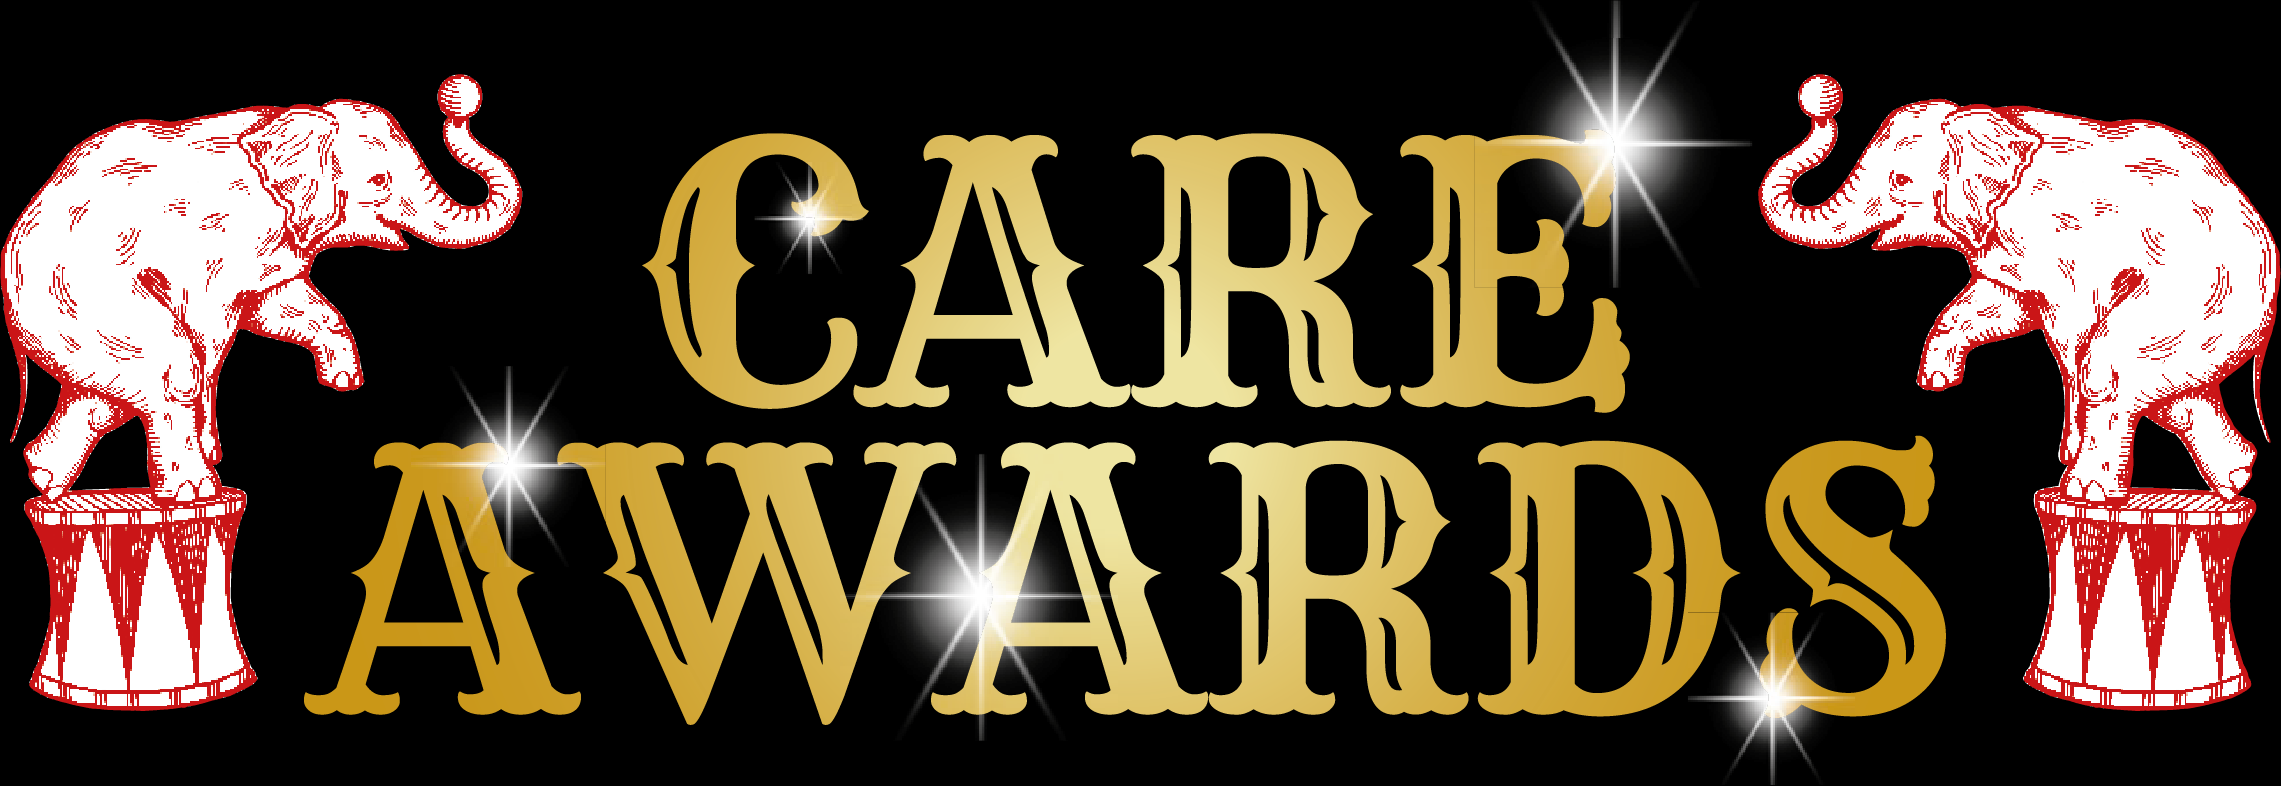 Card Awards logo